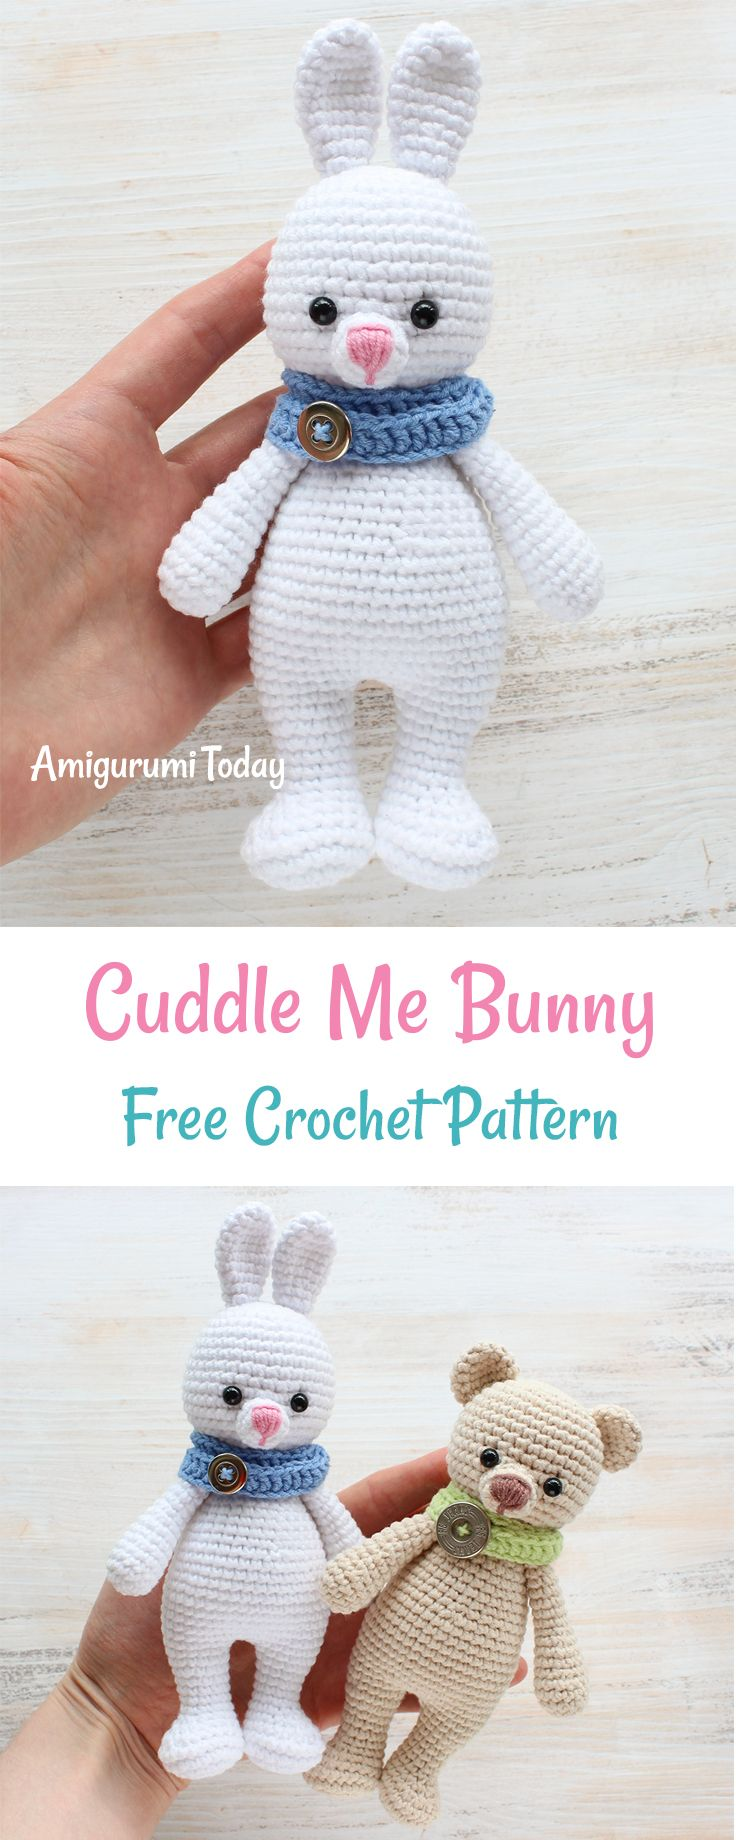 3886 best Amigurumi - crochet images on Pinterest | Crochet toys ...